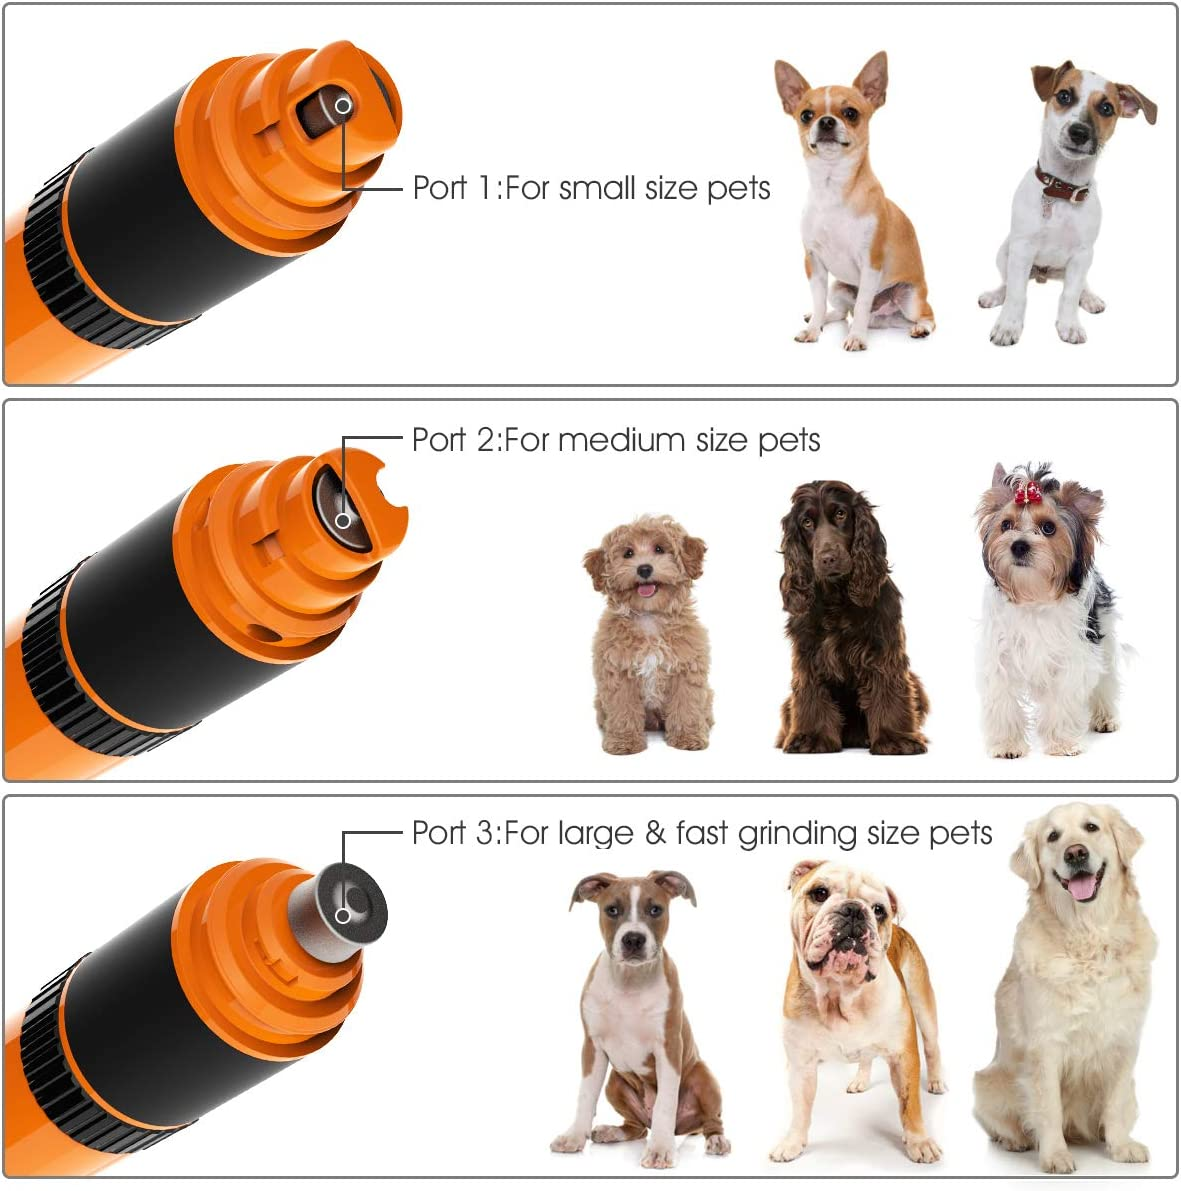 Dycsin Dog Nail Grinder Quiet Electric Pet Nail Trimmer Clipper Rechargeable with 20h Working Time Stepless Speed Paws Grooming for Large Medium Small Dog Cat : Pet Supplies